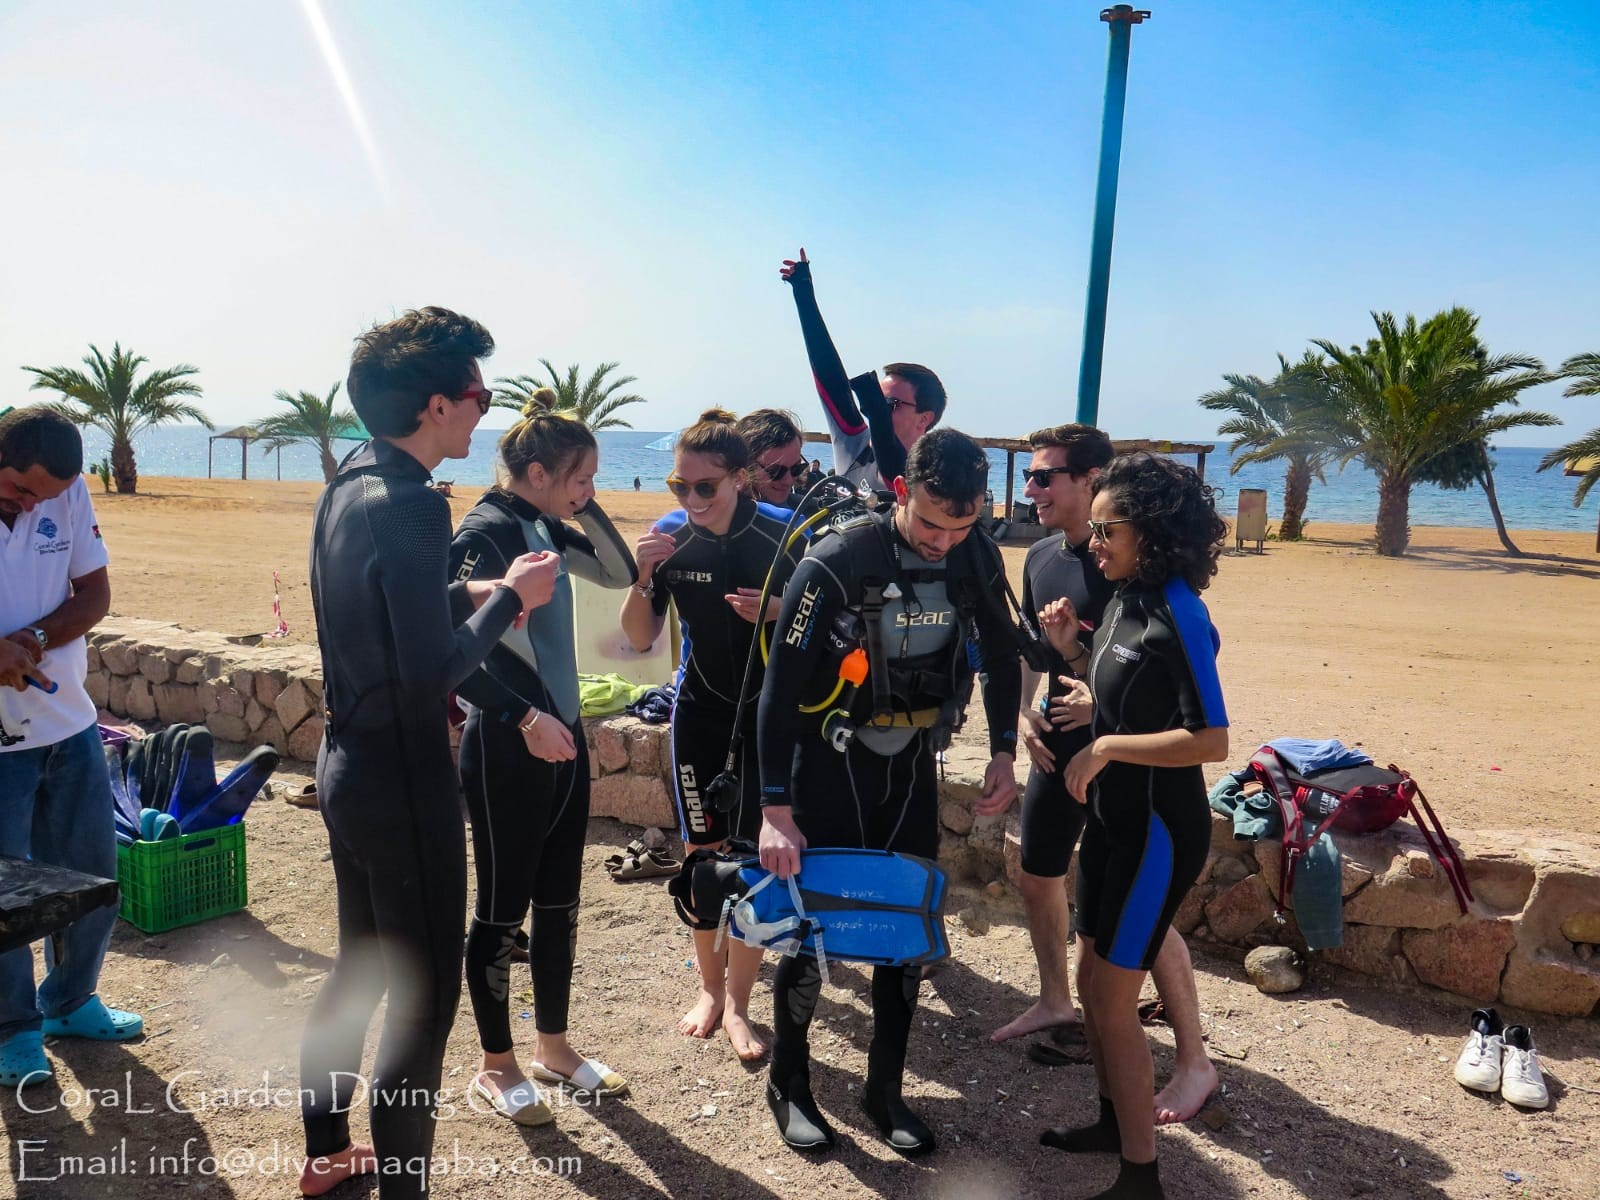 Our first group trip was to Aqaba and we went scuba diving!! It was a great weekend. Photo credit: Arguin, 2019